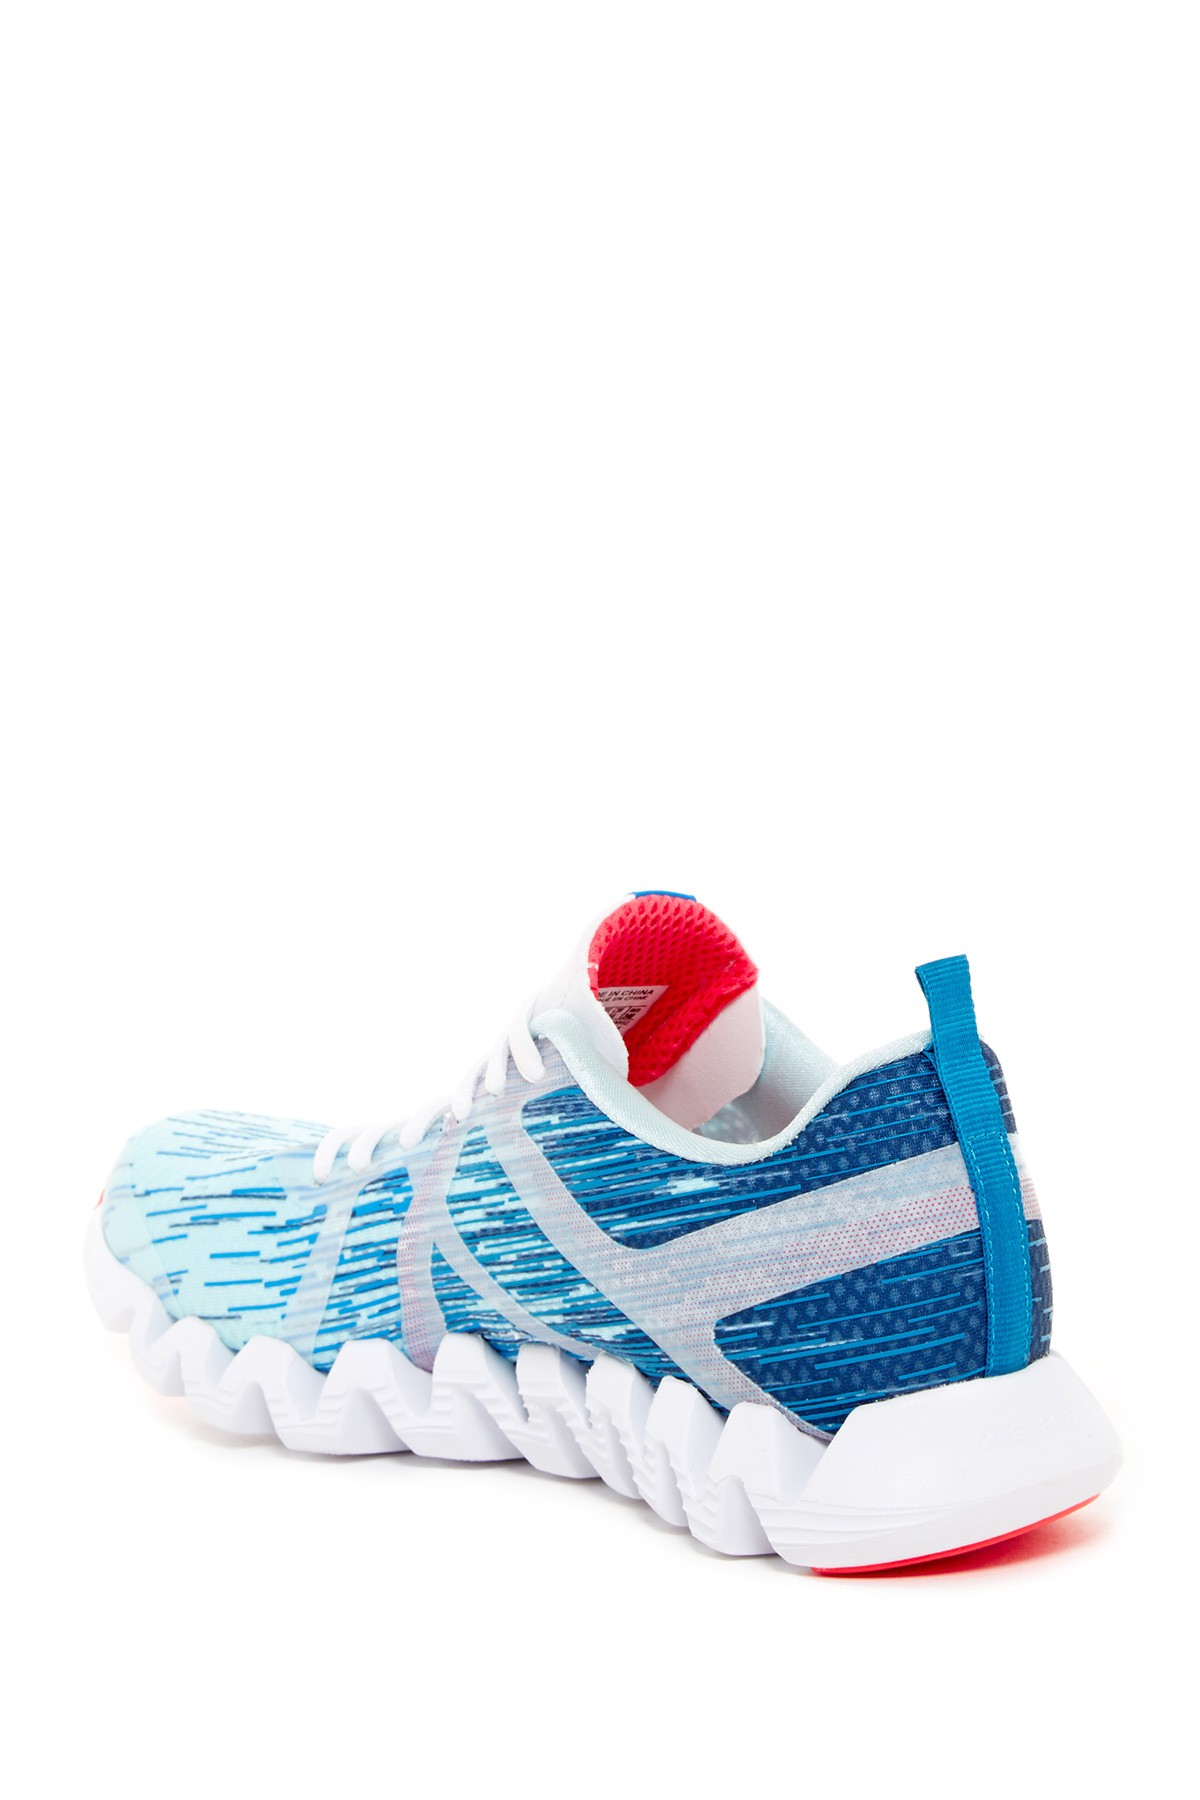 Reebok Zigtech Squared   Running Shoes